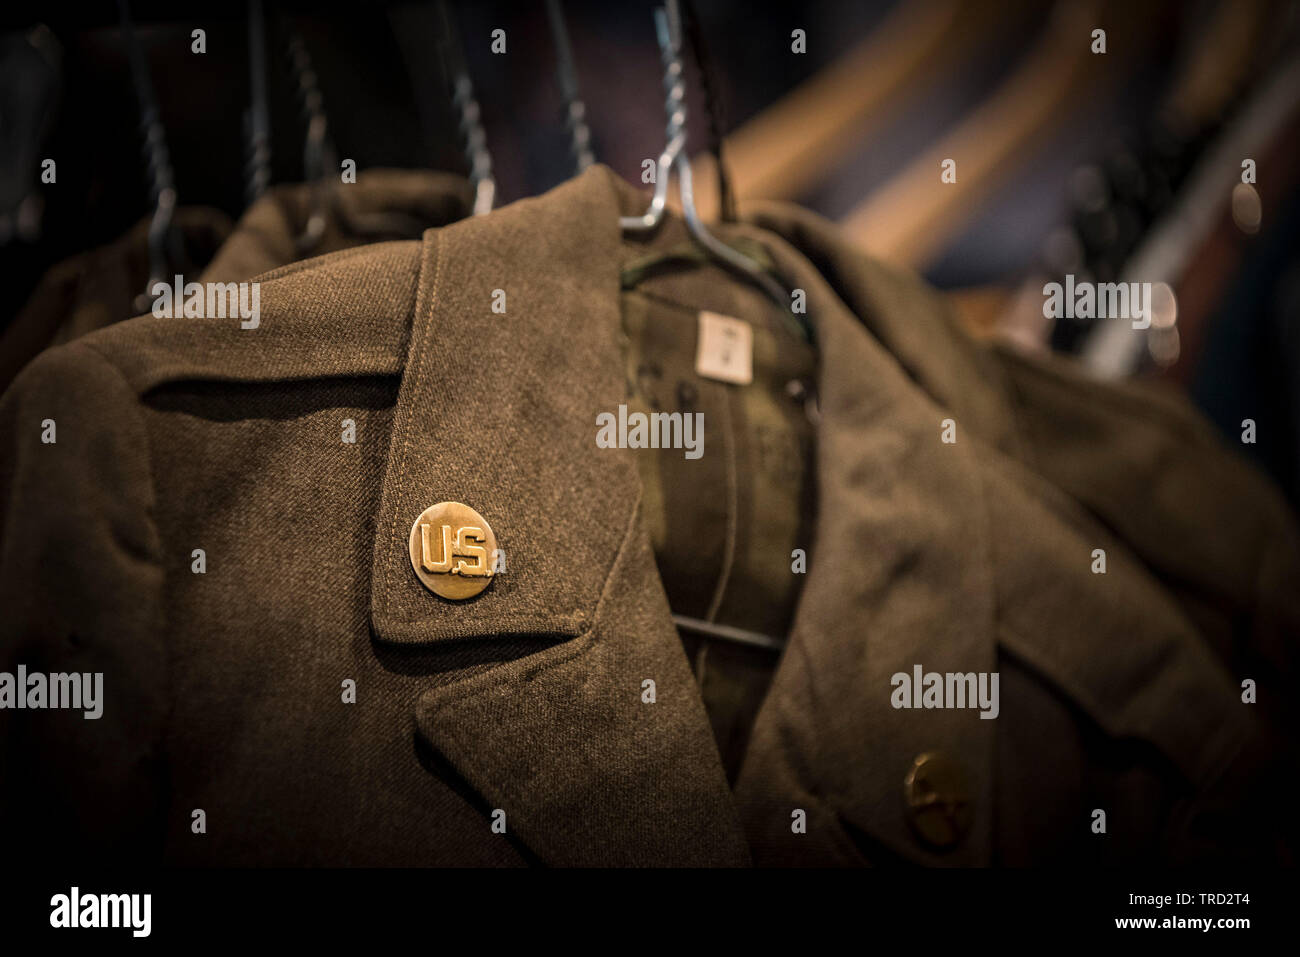 A close up view of the brass 'Enlisted Man' emblem on the uniform tunic of a World War II American Infantryman. - Stock Image